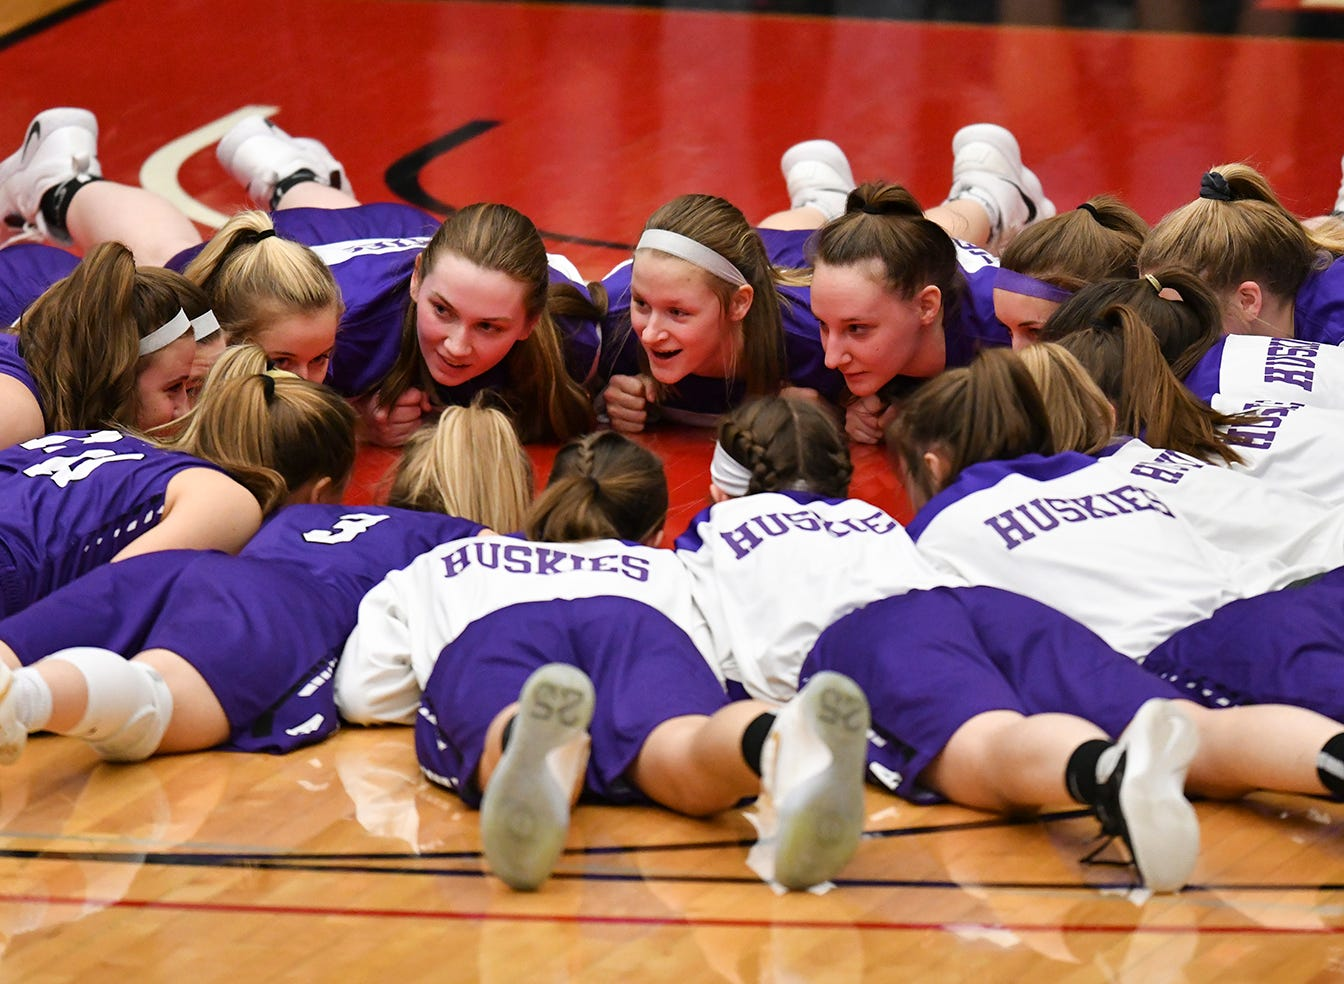 Albany players gather before the start of  the Section 6-2A championship game against Pine City Friday, March 8, at Halenbeck Hall in St. Cloud.